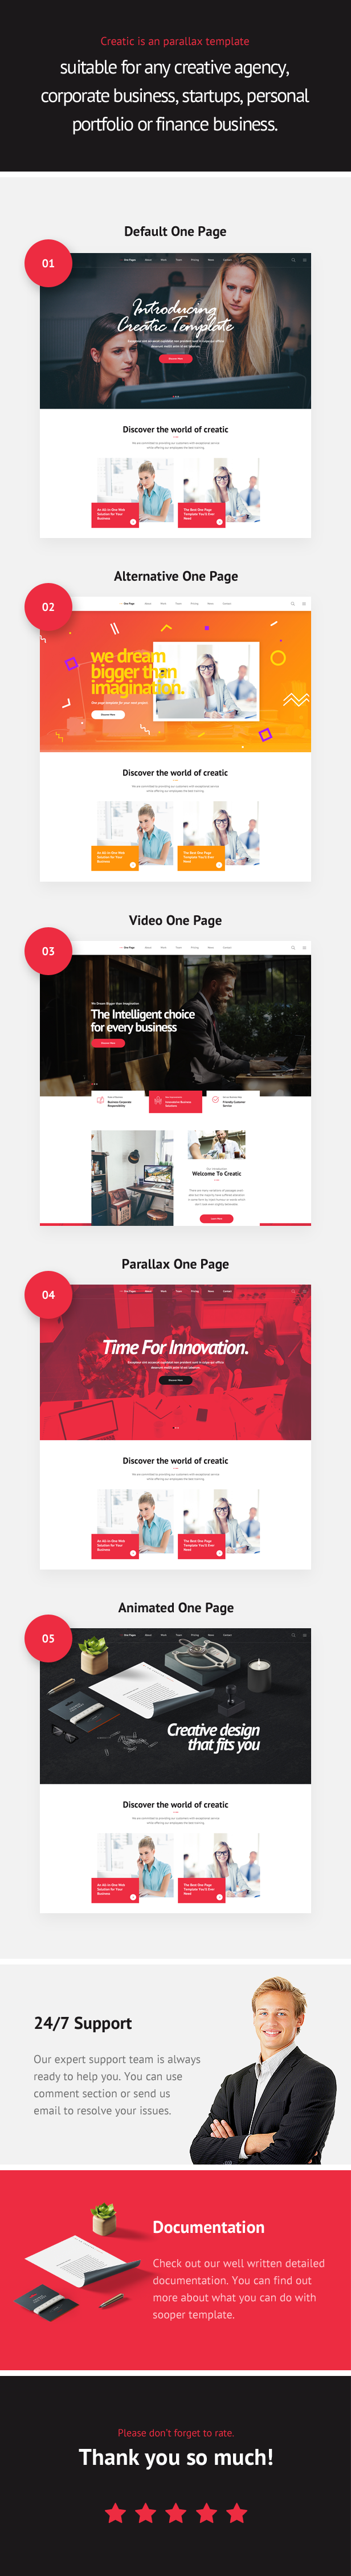 Creatic - One Page Creative Parallax Template - 2